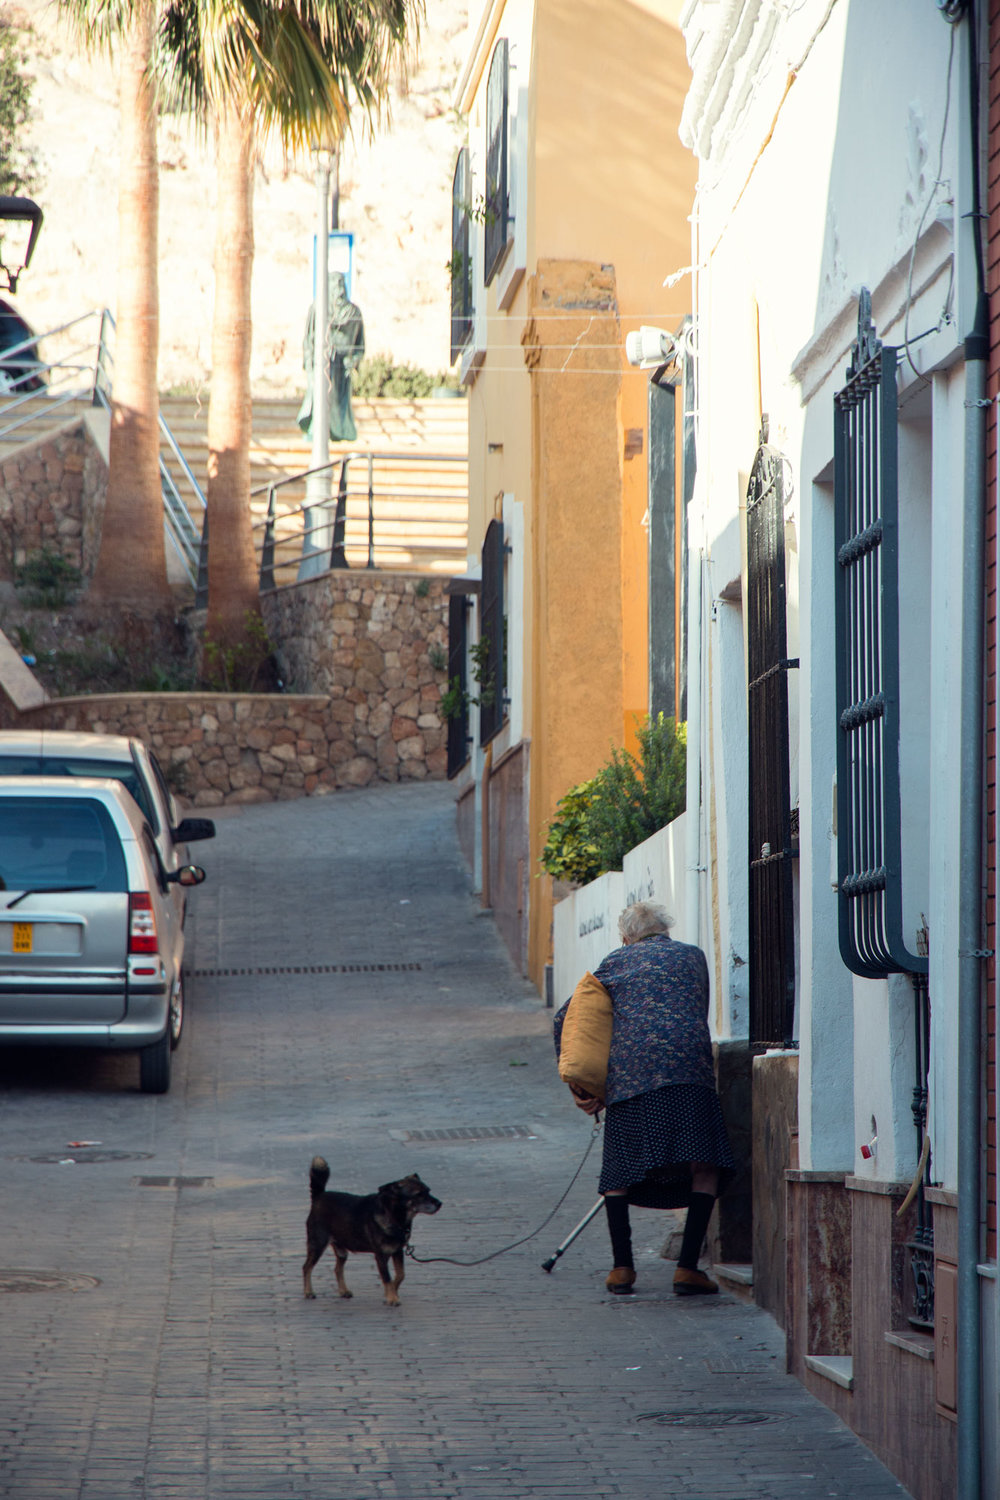 Spanish lady walking dog.